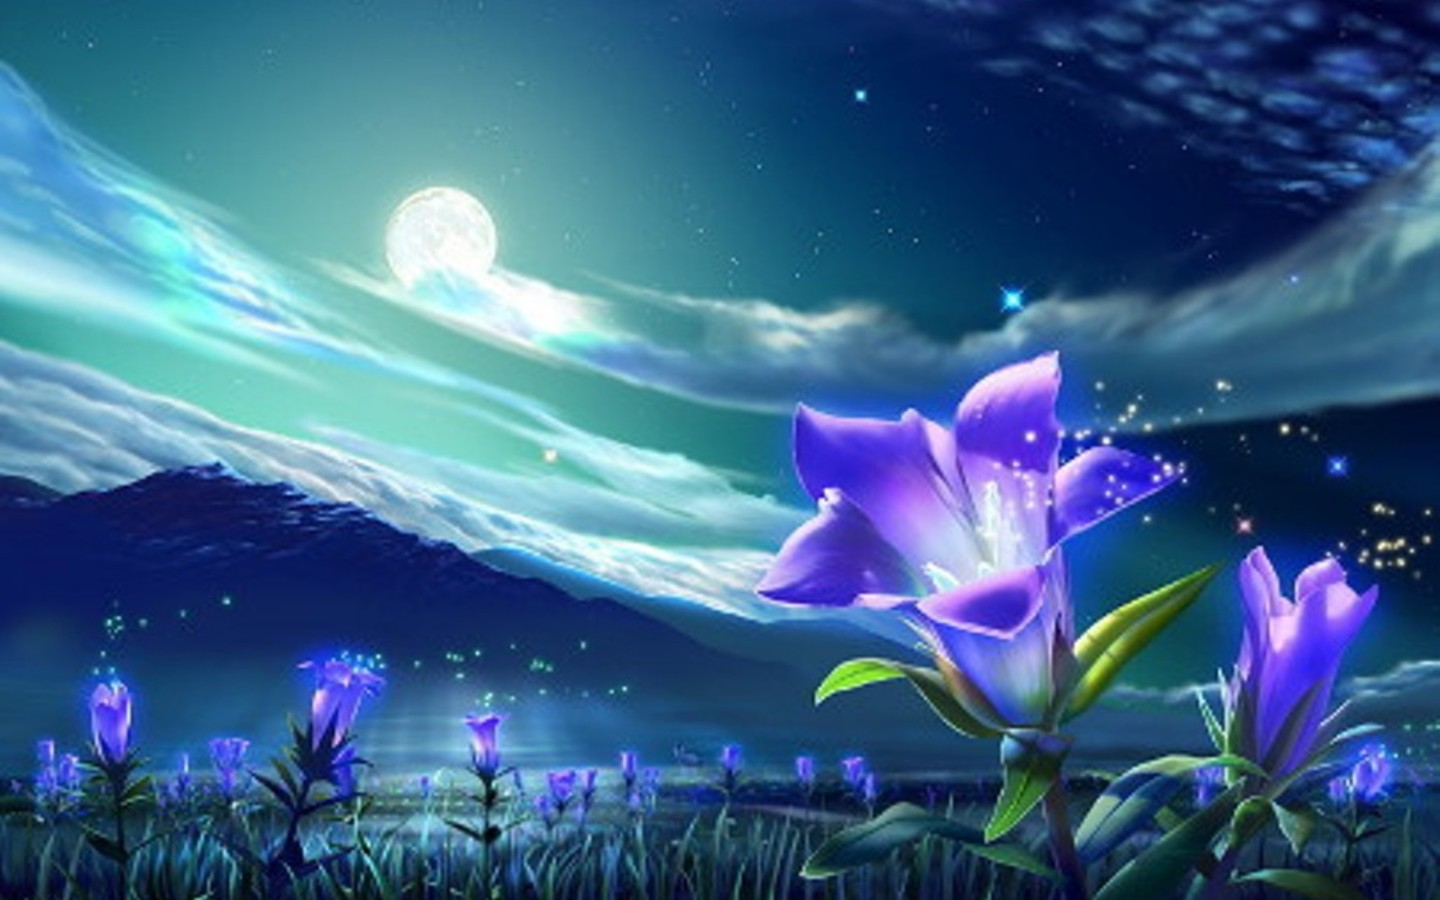 Flowers for night time flowers healthy full flower moon may 21 2018 shifting vibration izmirmasajfo